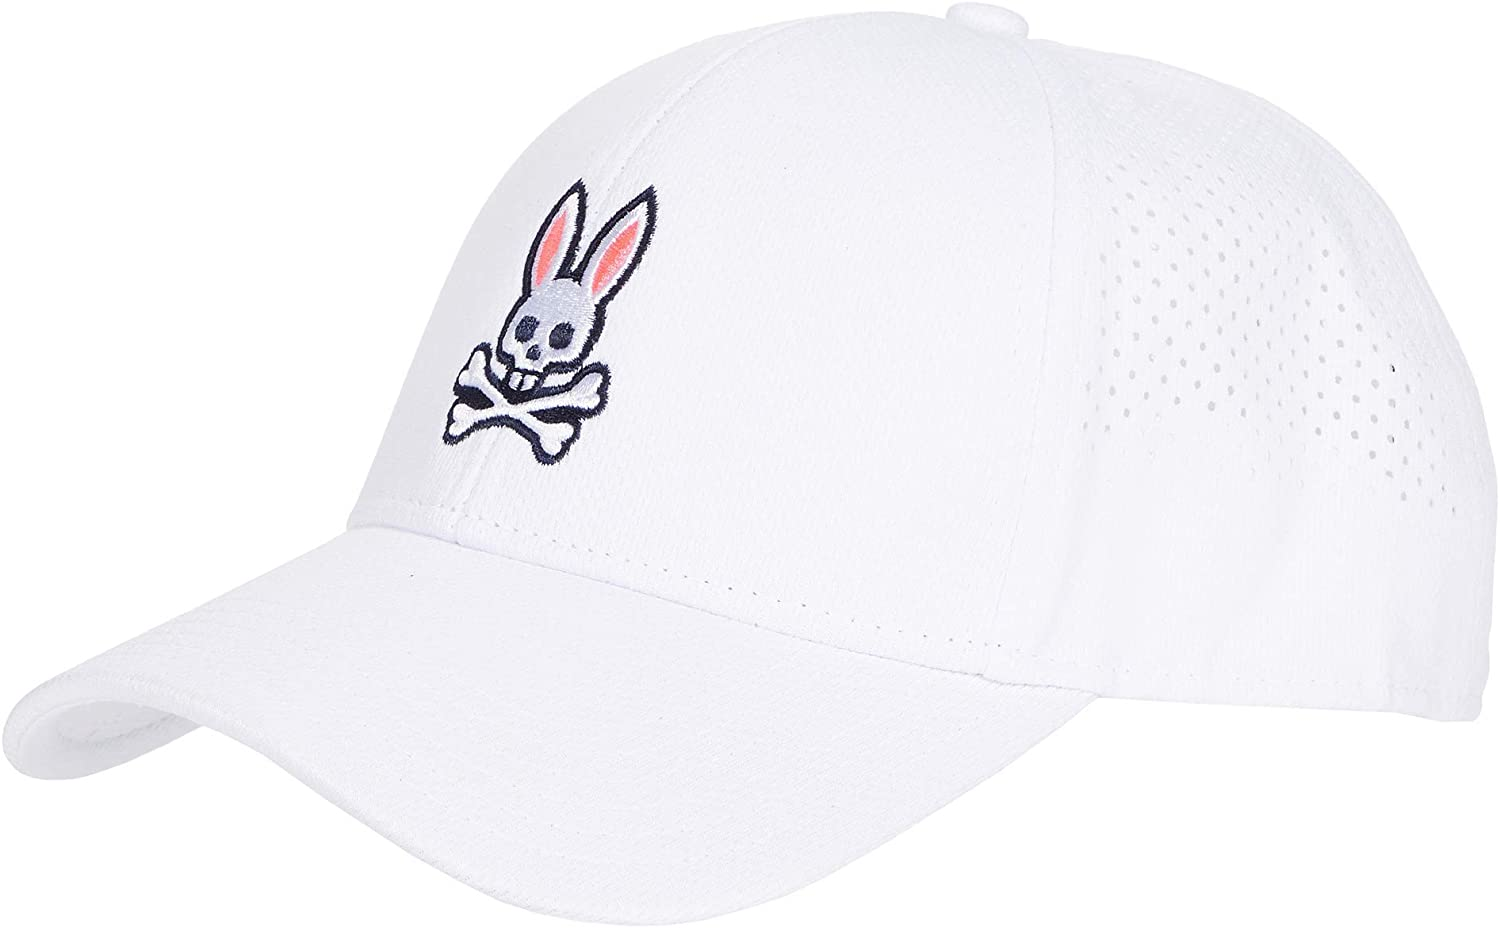 Sales for sale Psycho Translated Bunny Cap Sport